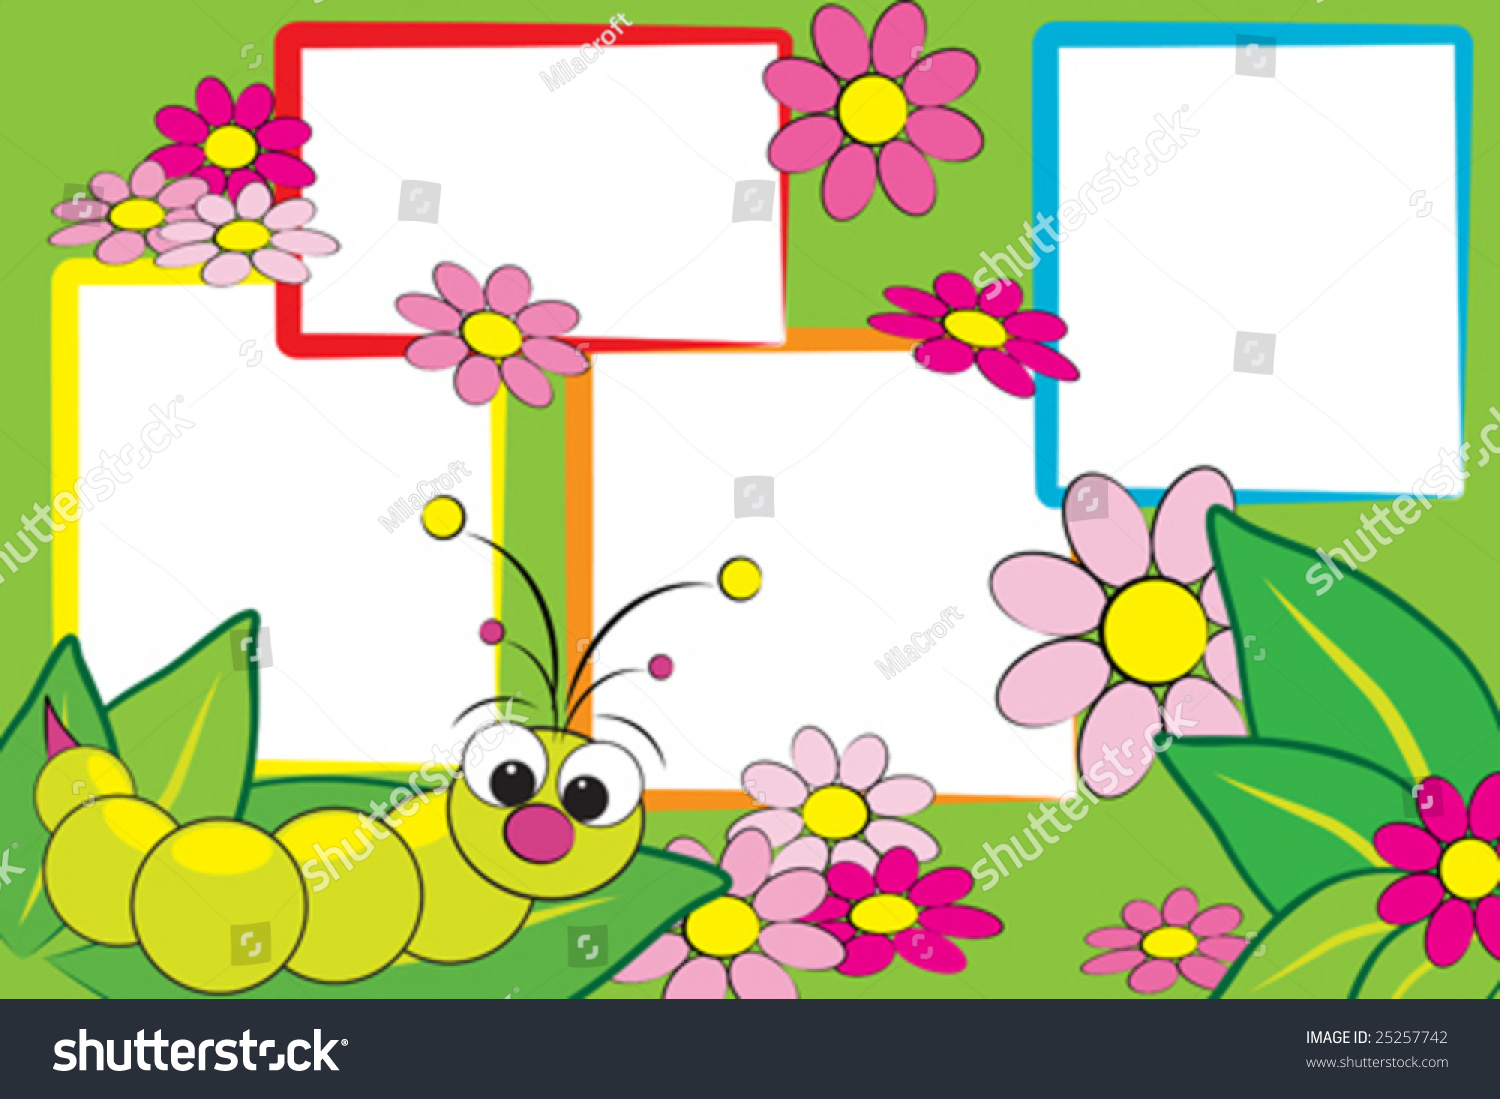 Kid Scrapbook Grub Flowers Photo Frames Stock Vector (Royalty Free ...